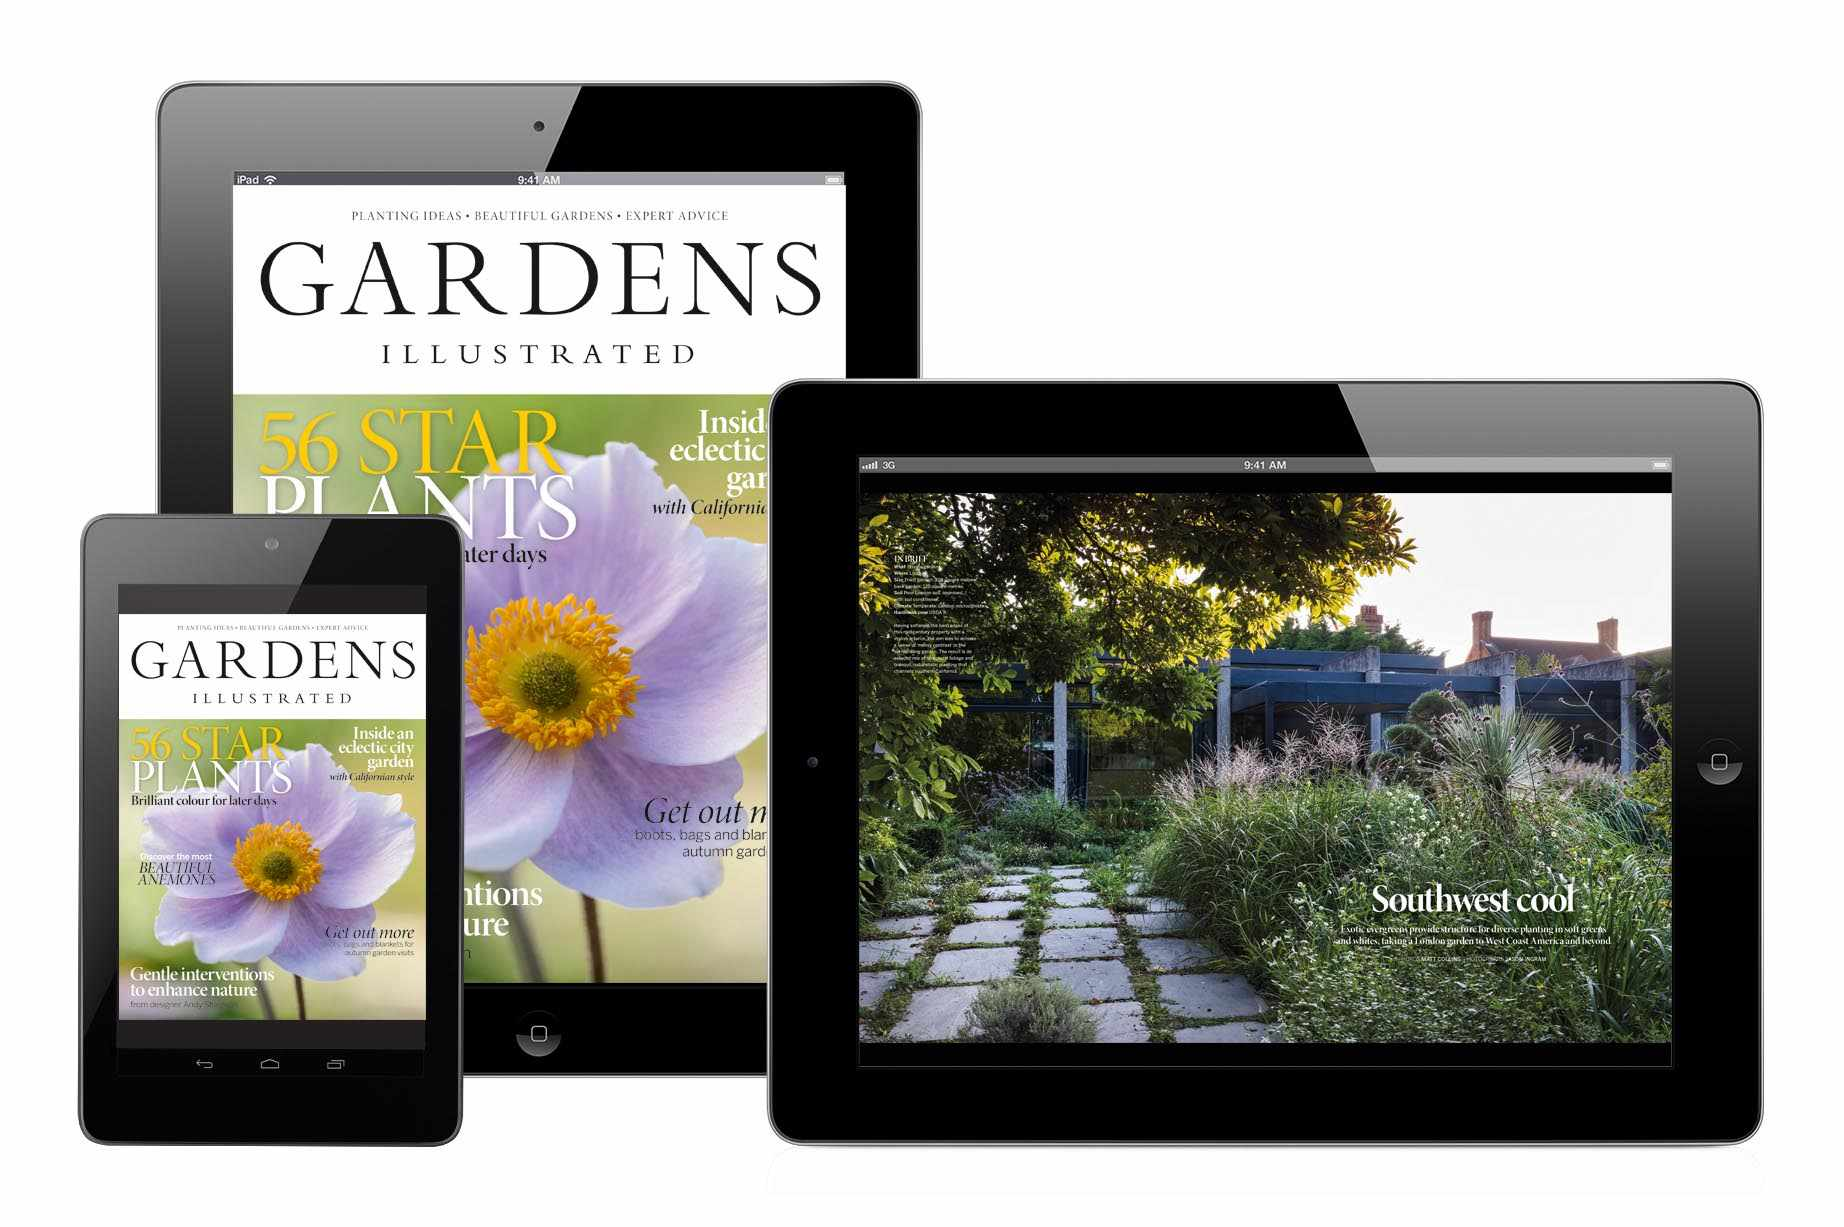 September's Gardens Illustrated